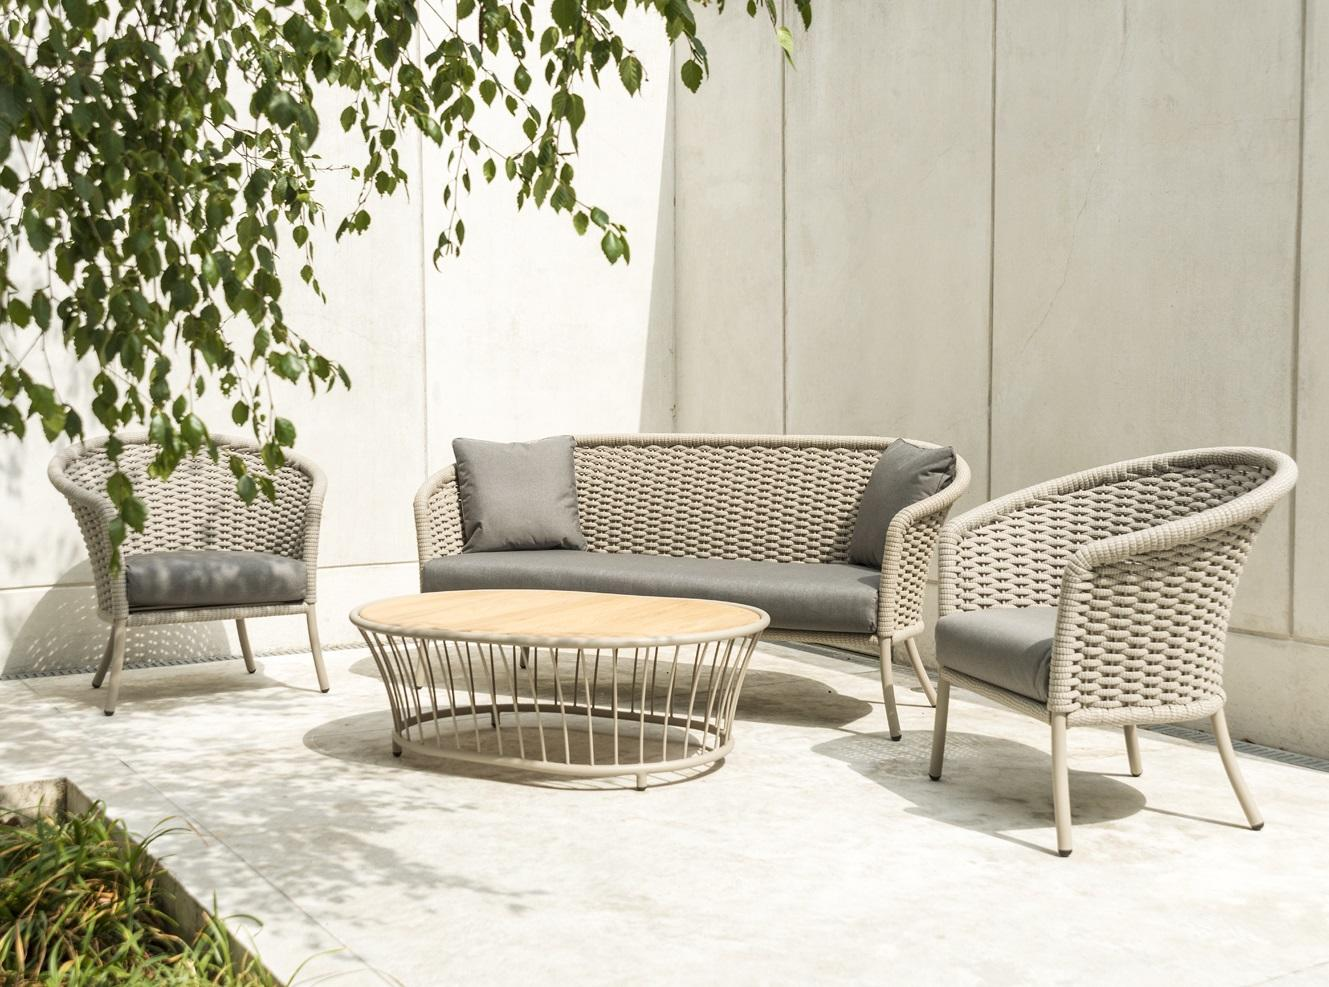 modern rope garden lounge sofa with armchairs and coffee table